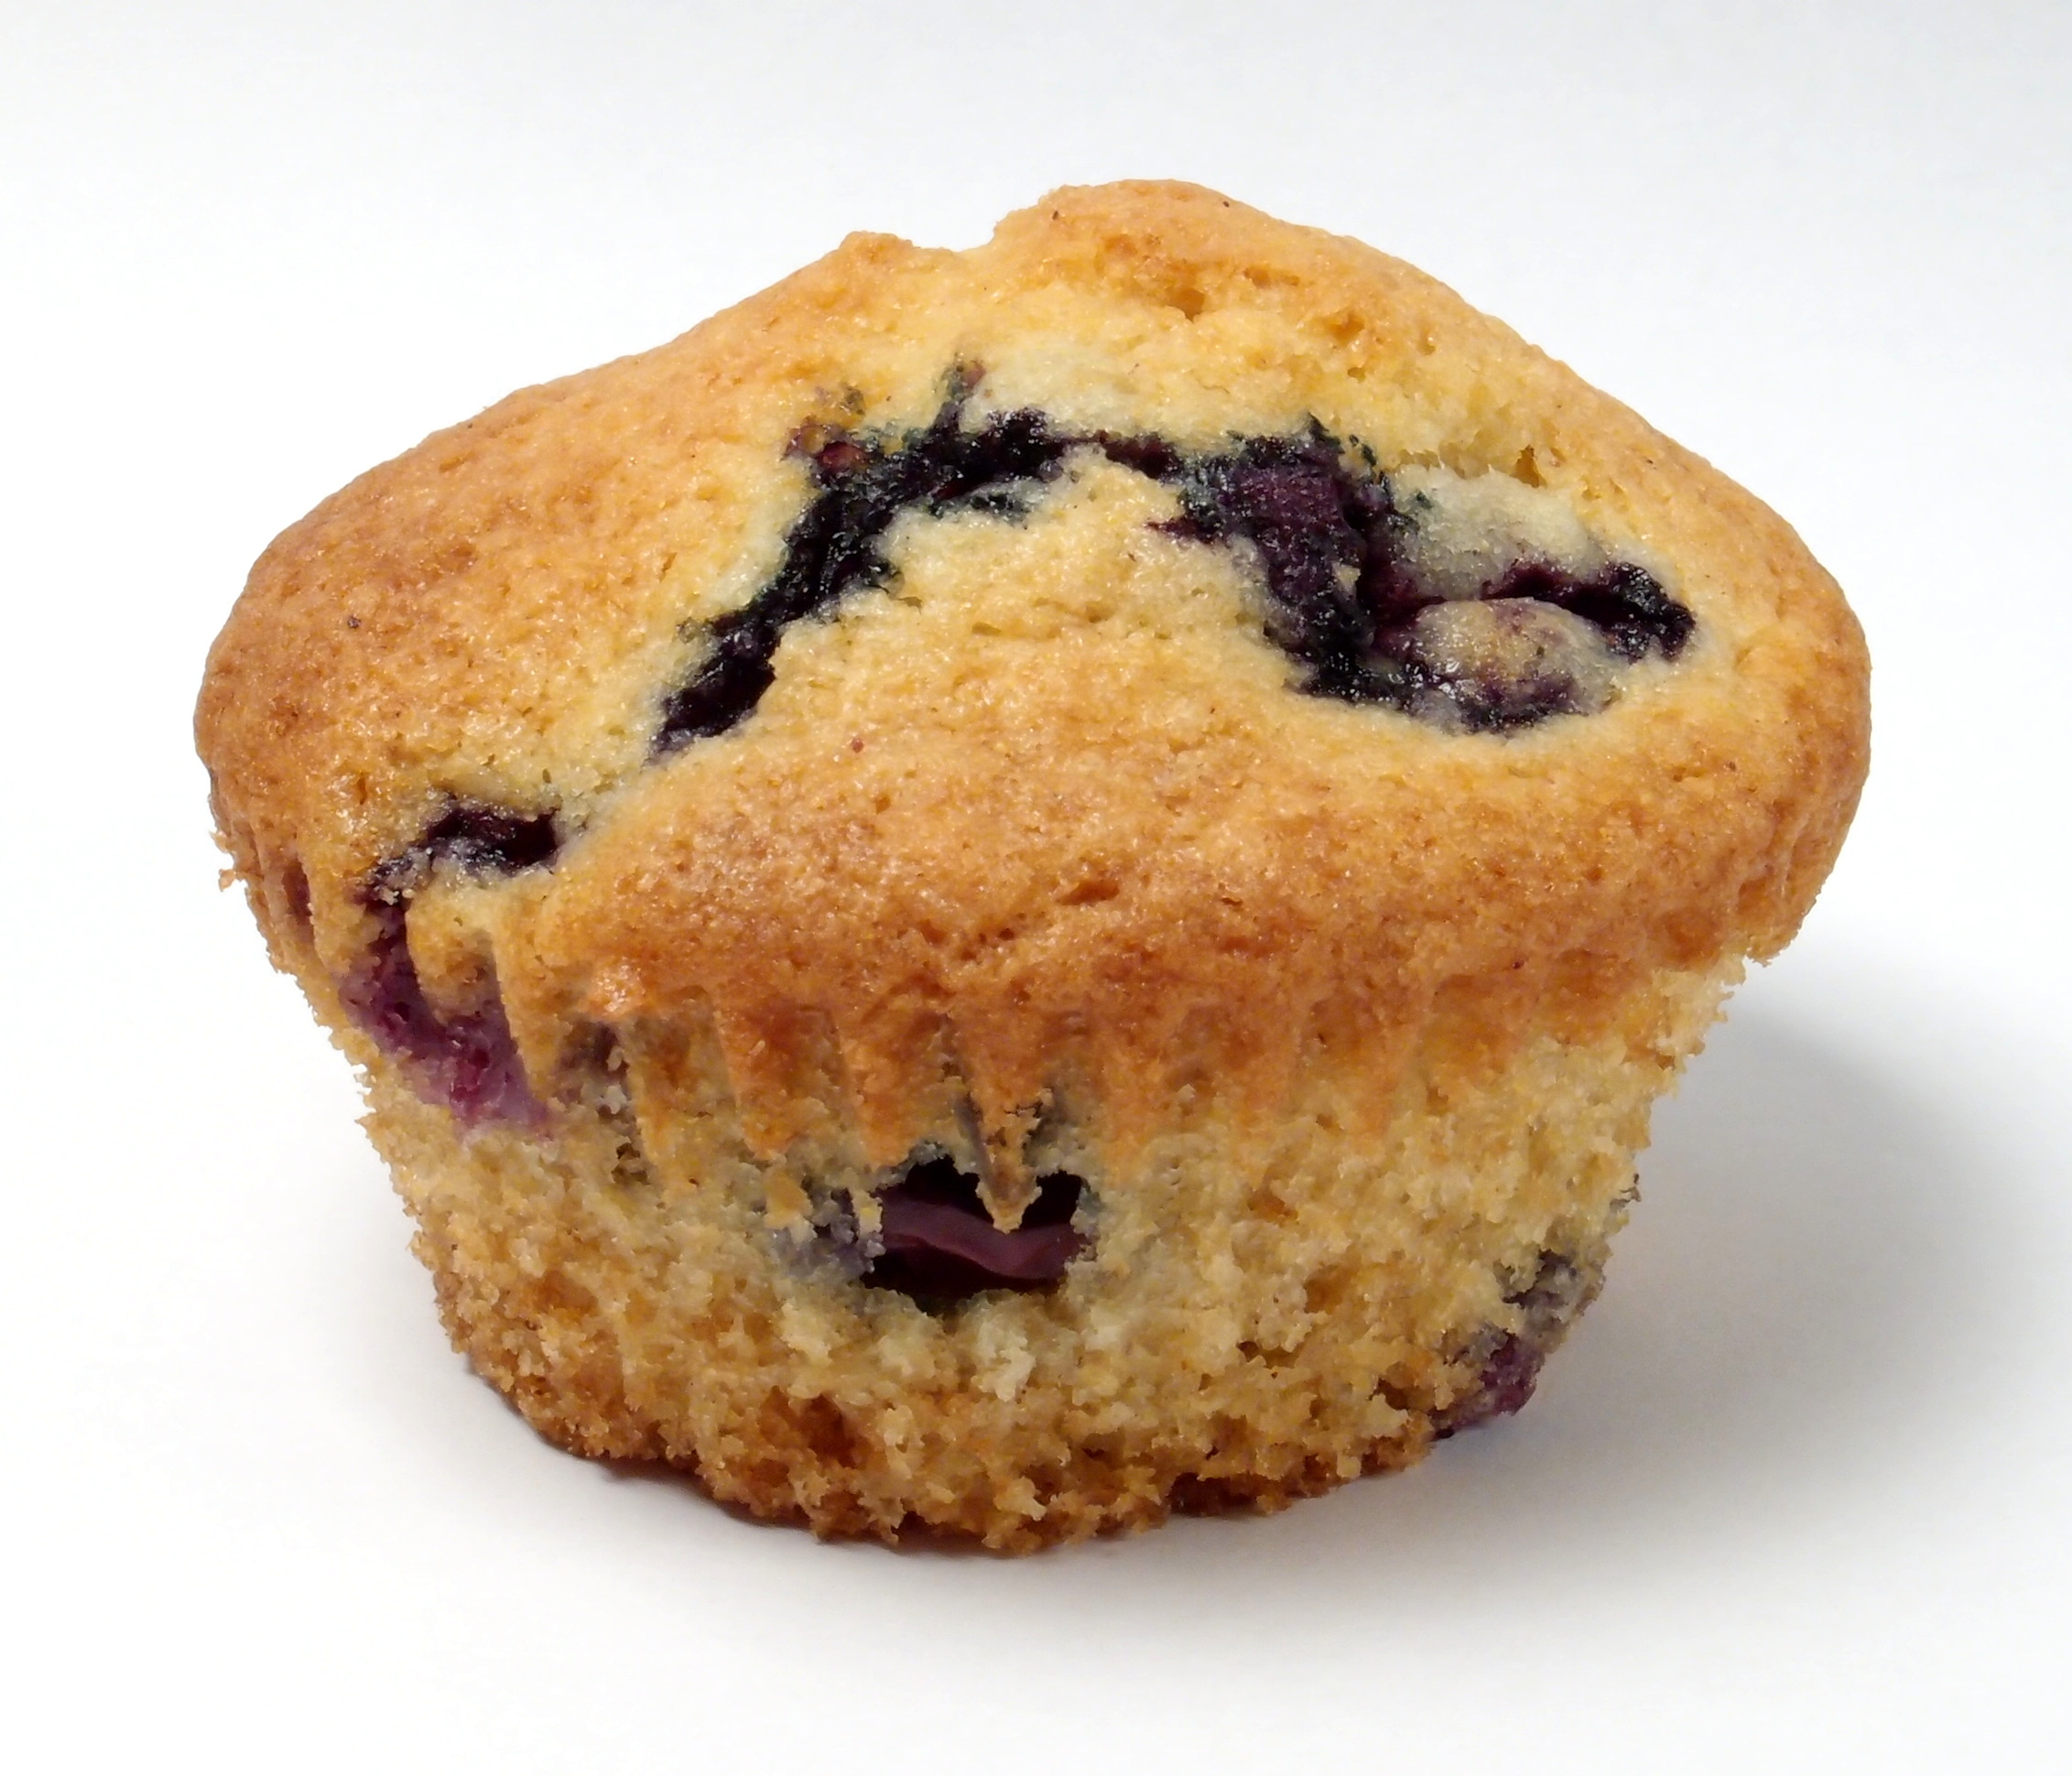 ... blueberry muffins coconut blueberry muffins blueberry corn muffins